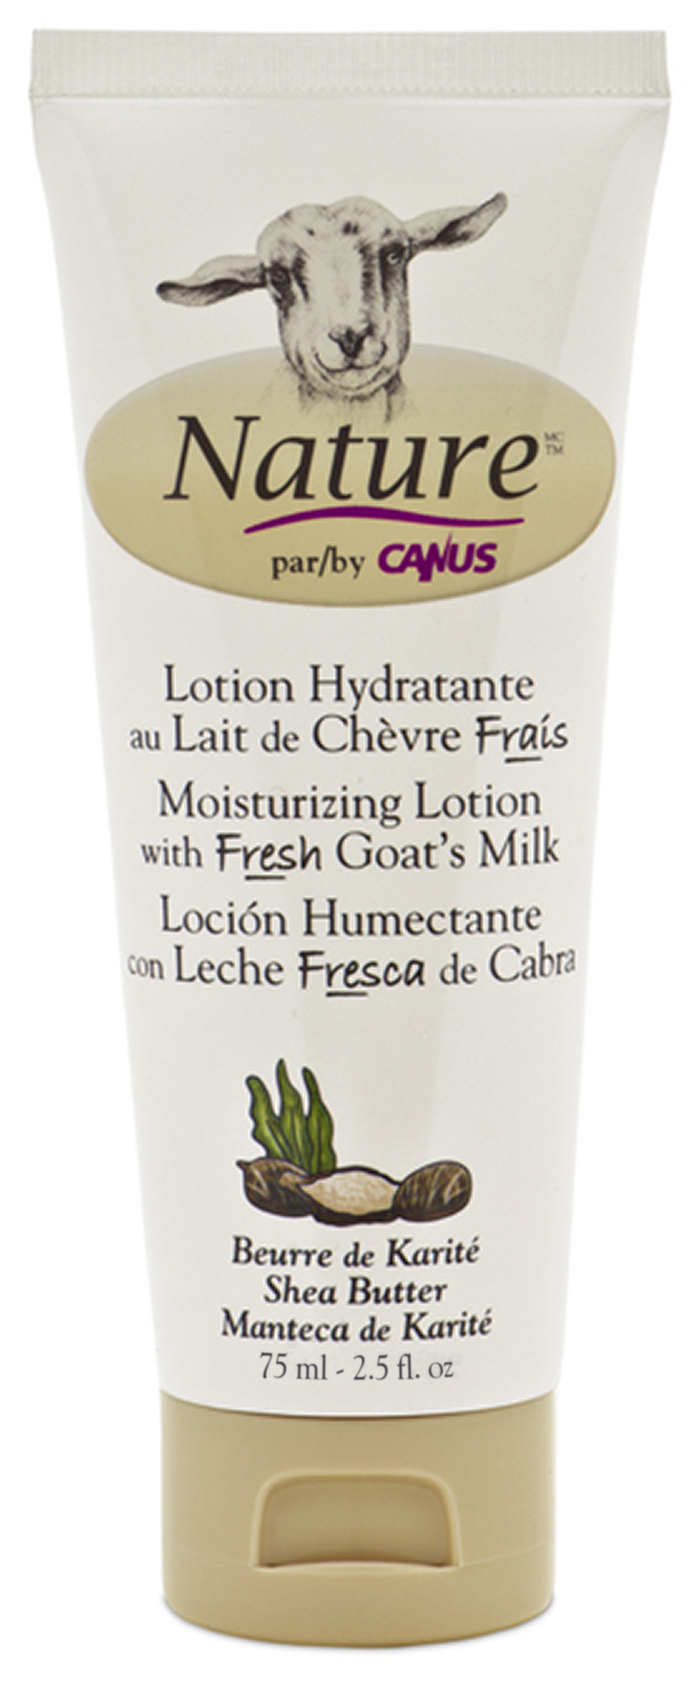 Shea Butter Moisturizing Lotion 2.5 oz